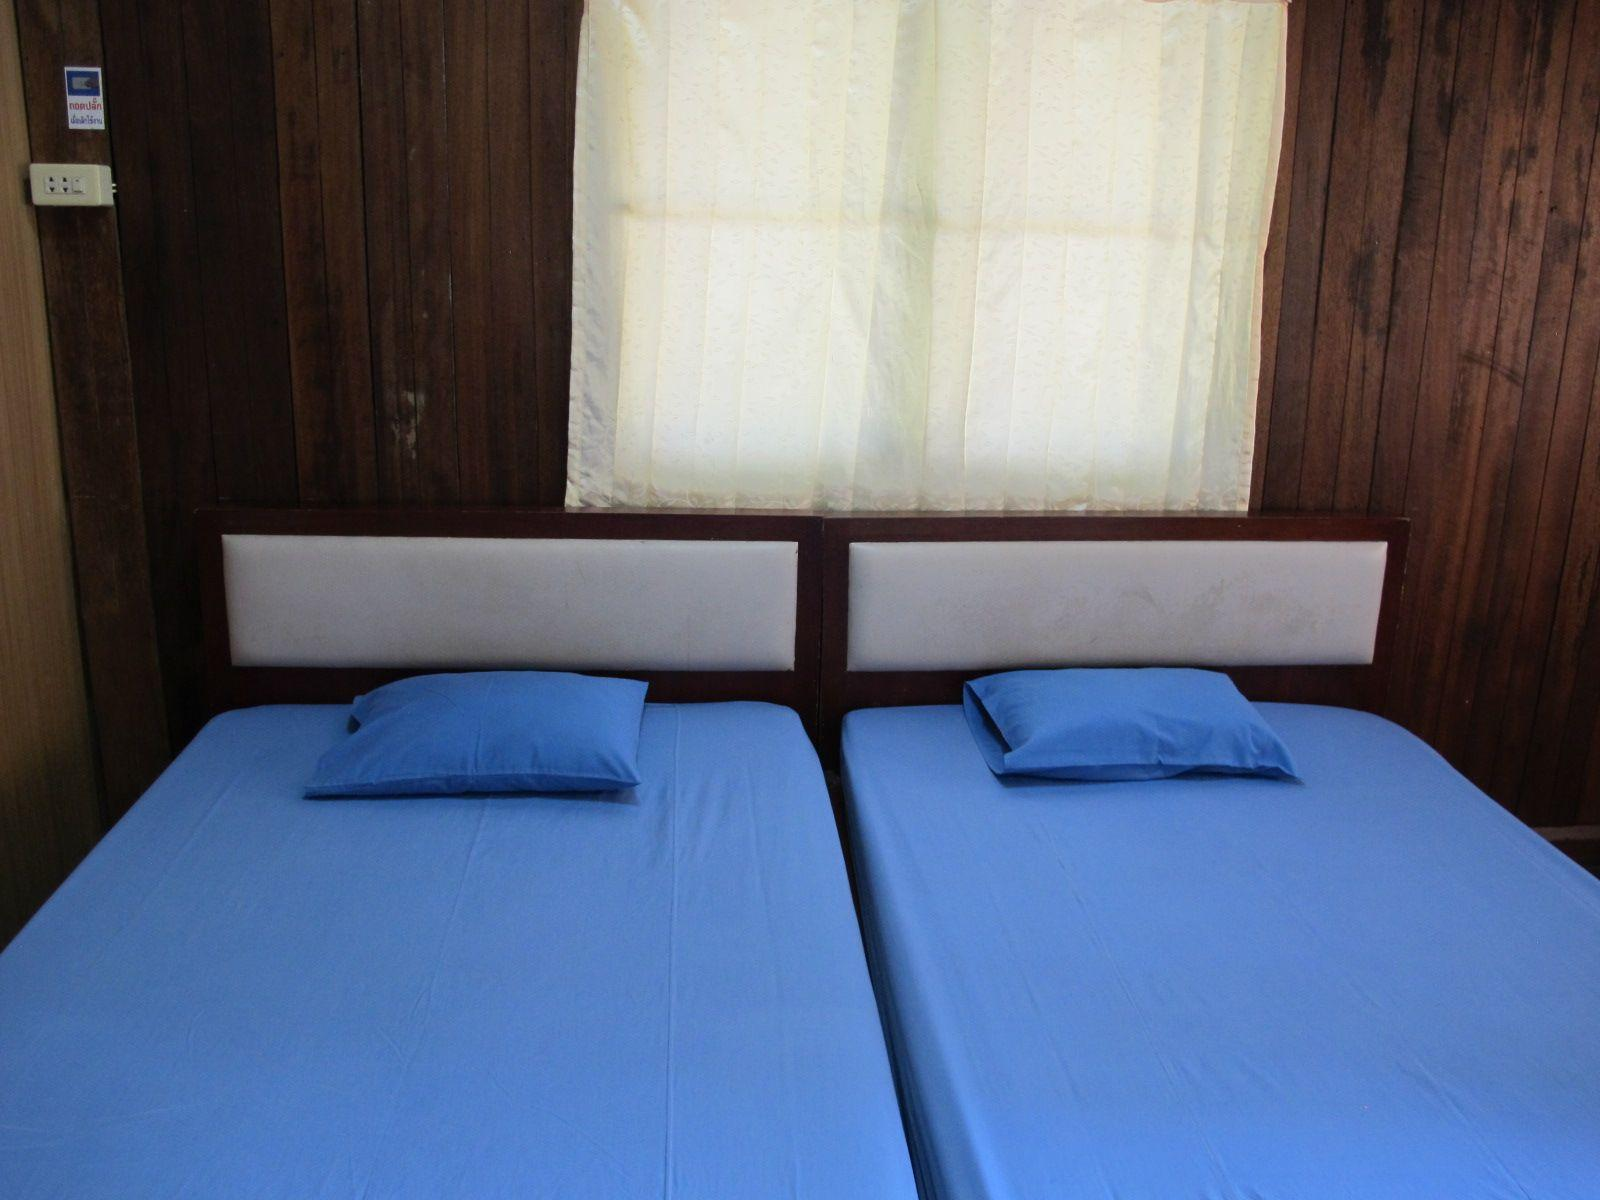 Deluxe pour 6 personnes (Deluxe - 6 persons)